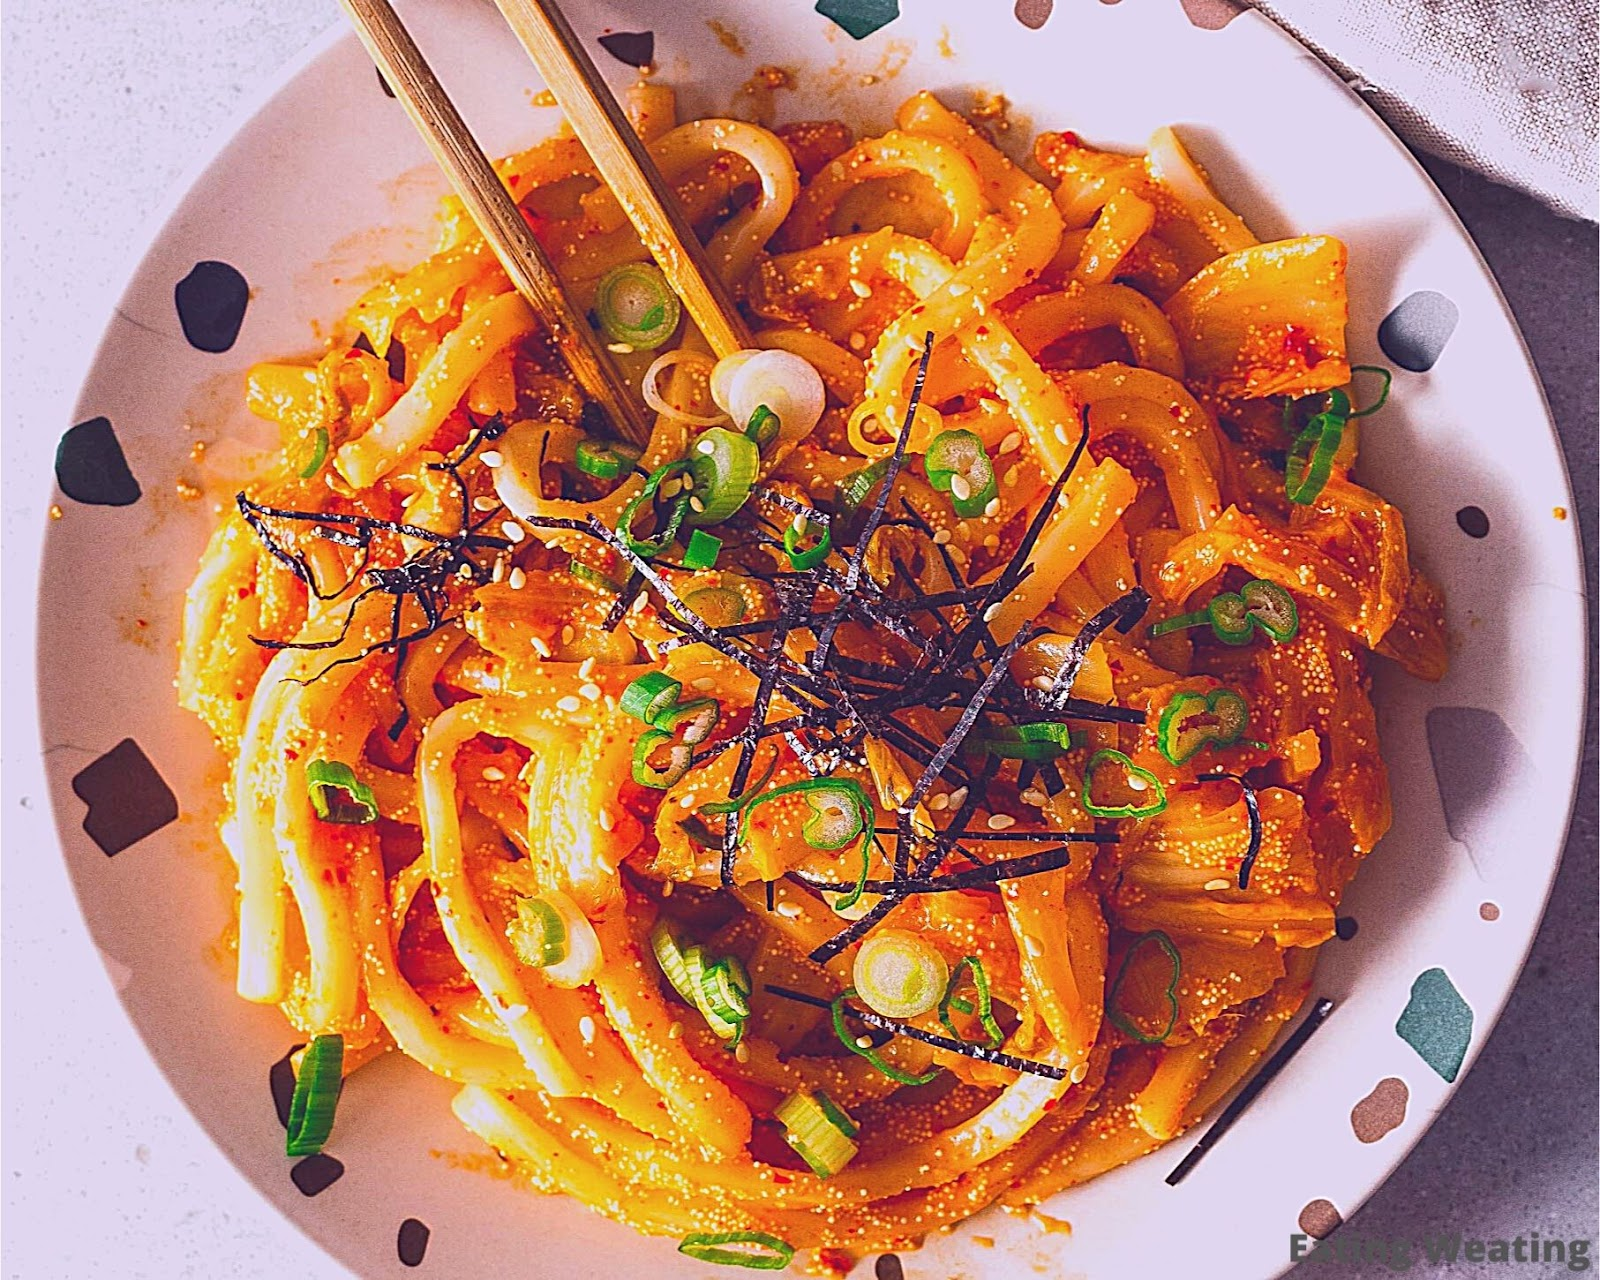 Spicy Savory Mentaiko Udon